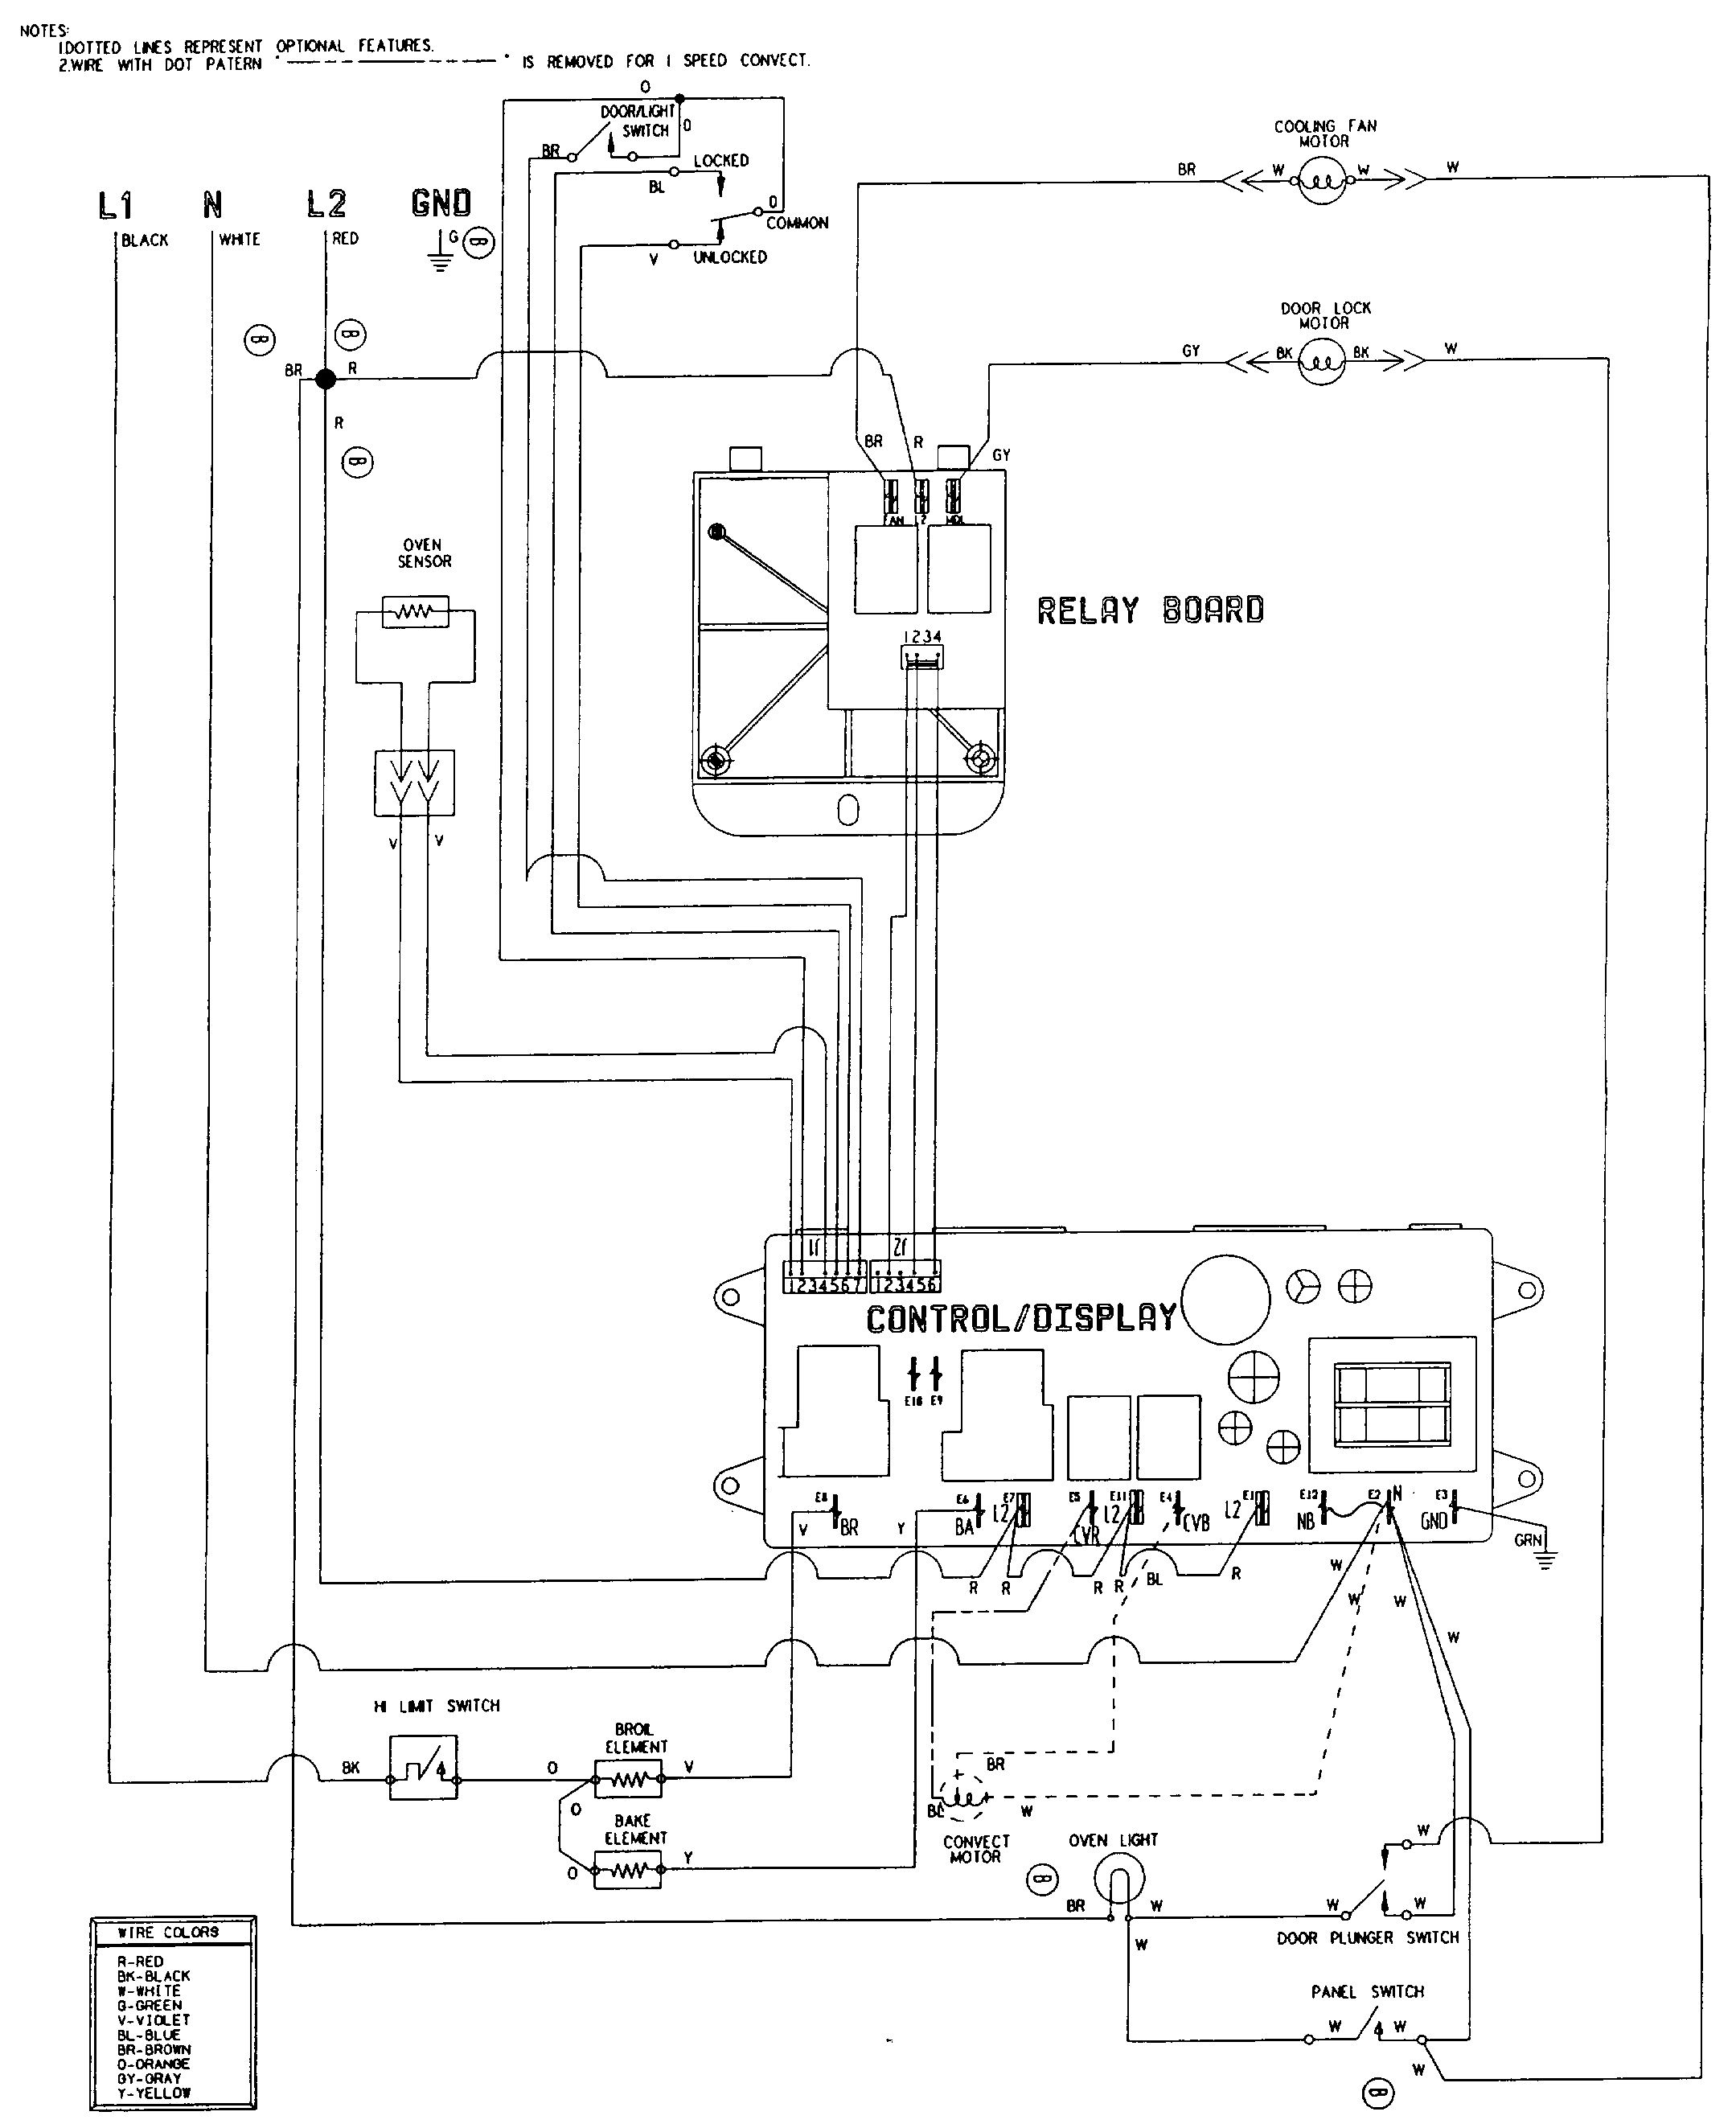 Wiring Diagram Electric Cooker : Jenn air w electric wall oven timer stove clocks